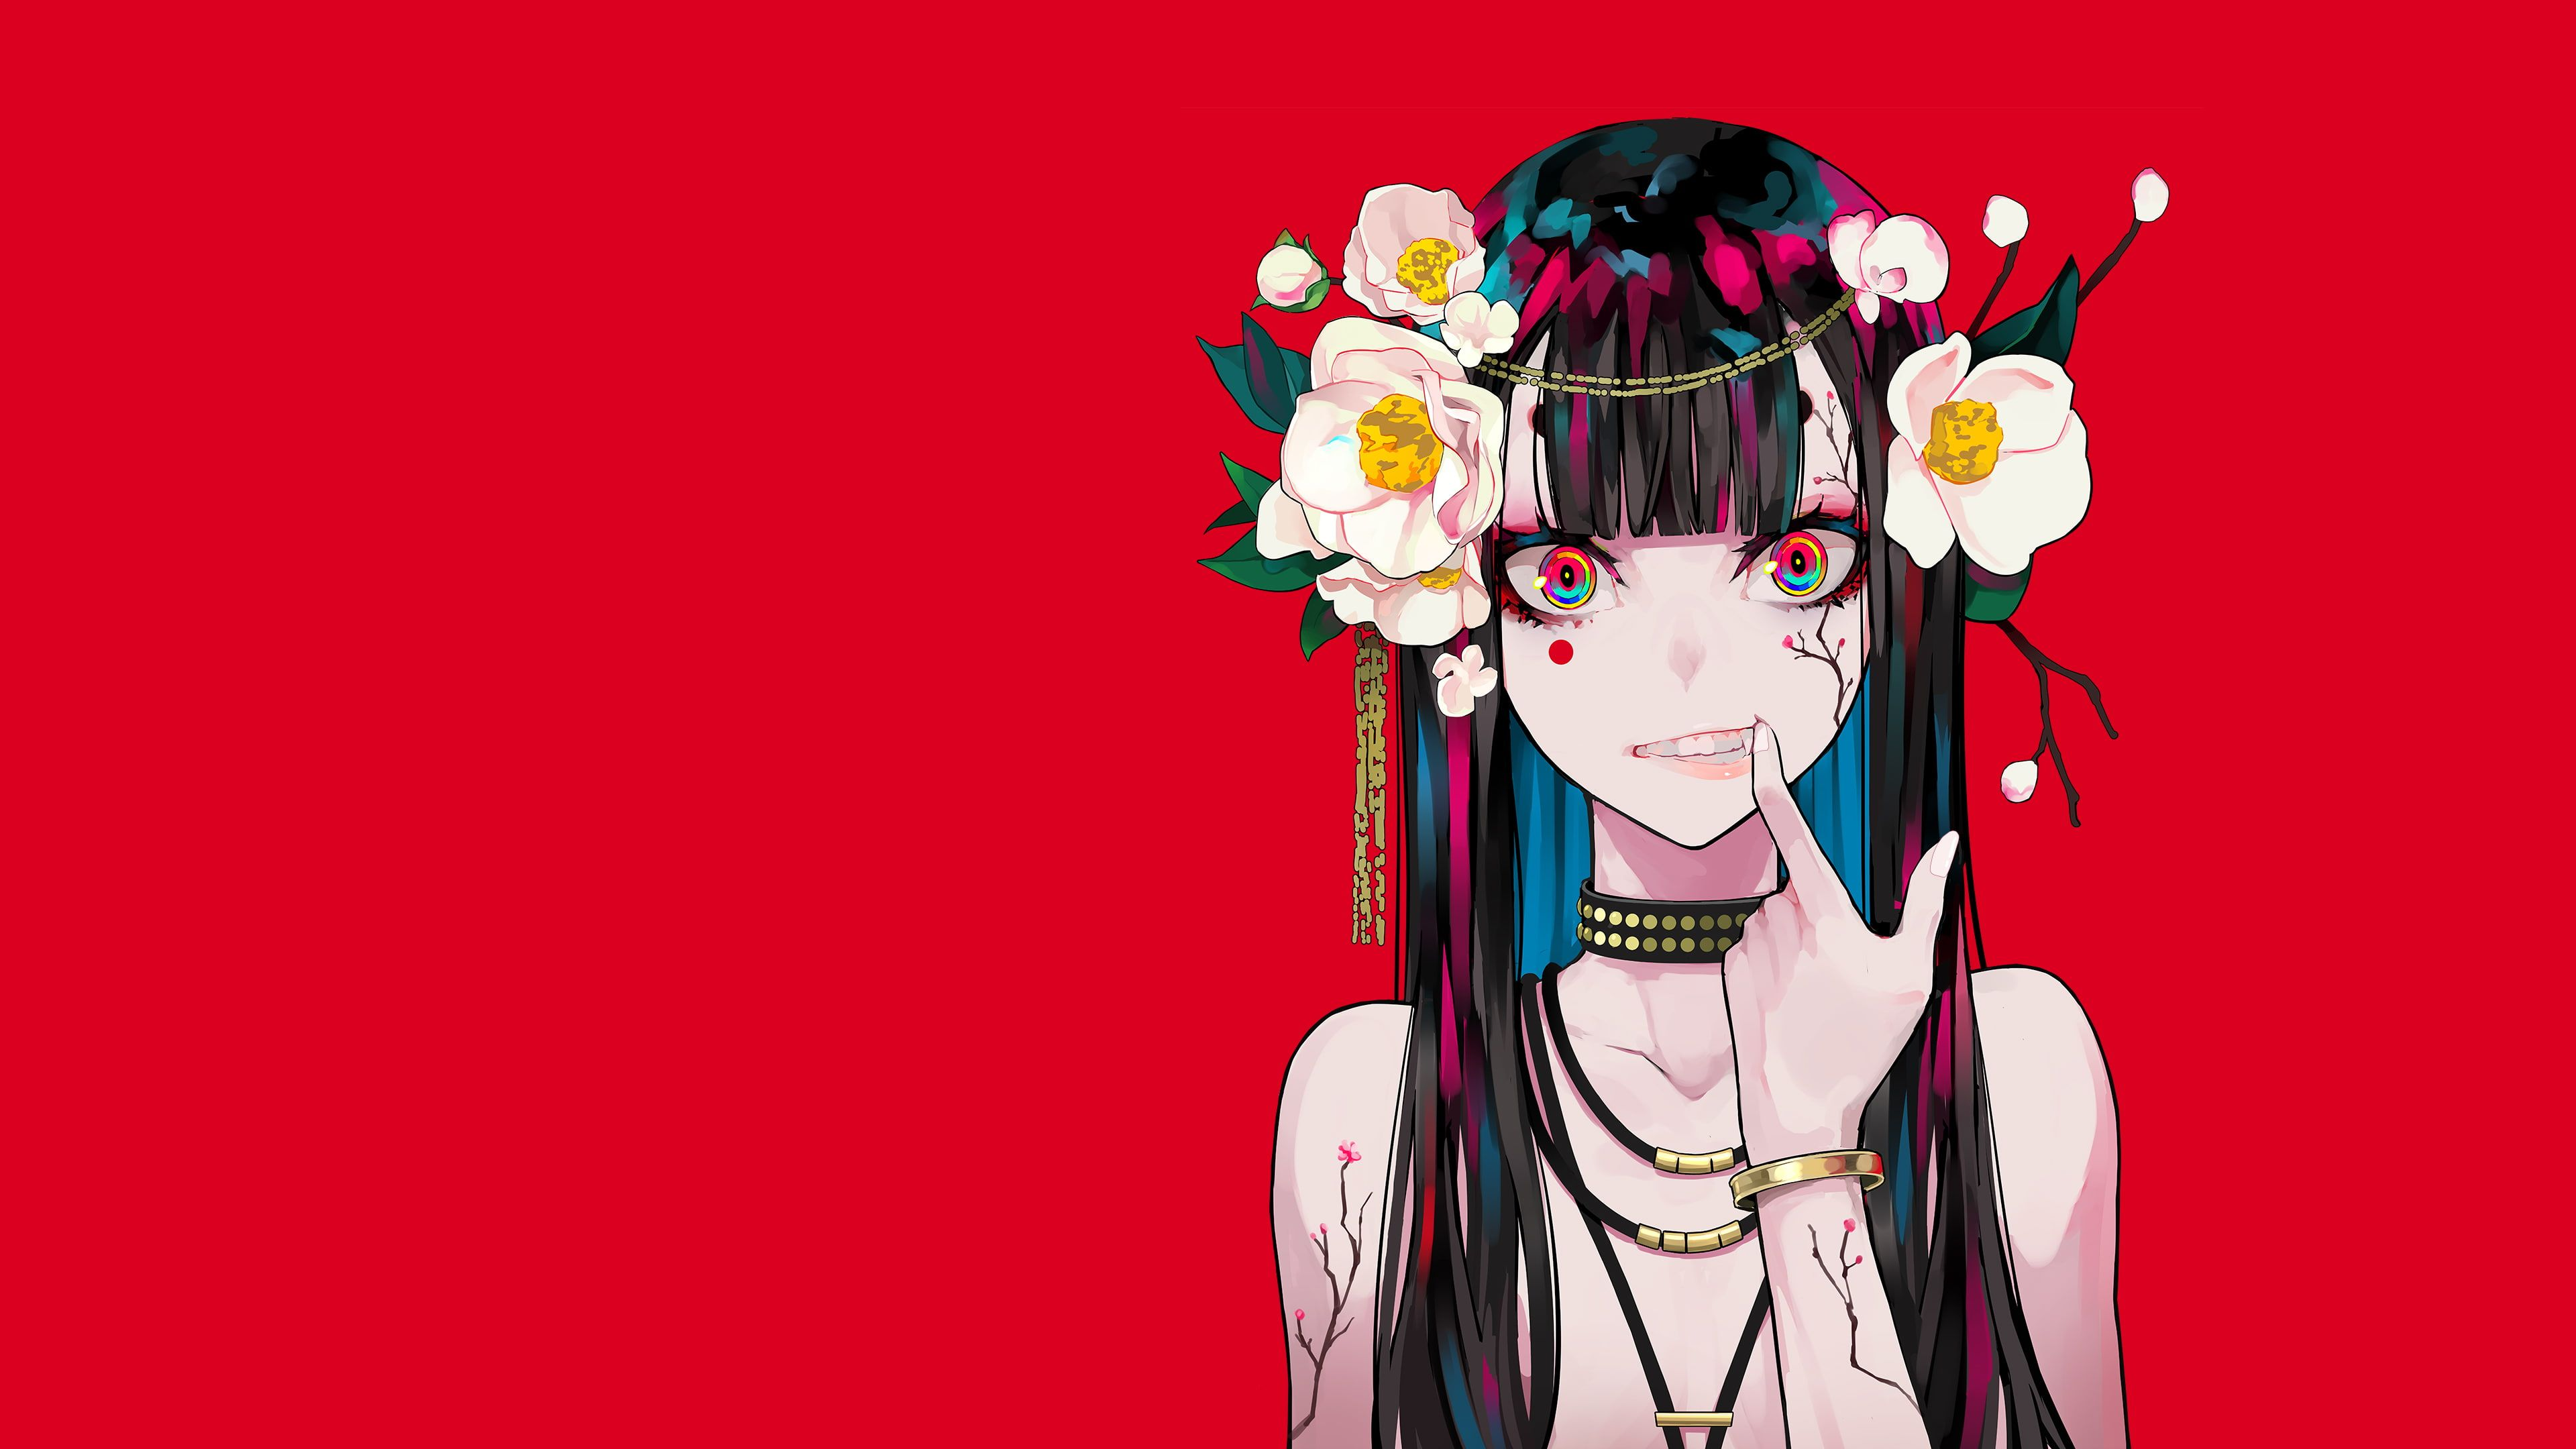 Artwork Minimalism Anime Girls Anime Flower In Hair Red Background Simple Background Colorful 4k Wallpaper In 2020 Anime Wallpaper Anime Android Wallpaper Anime